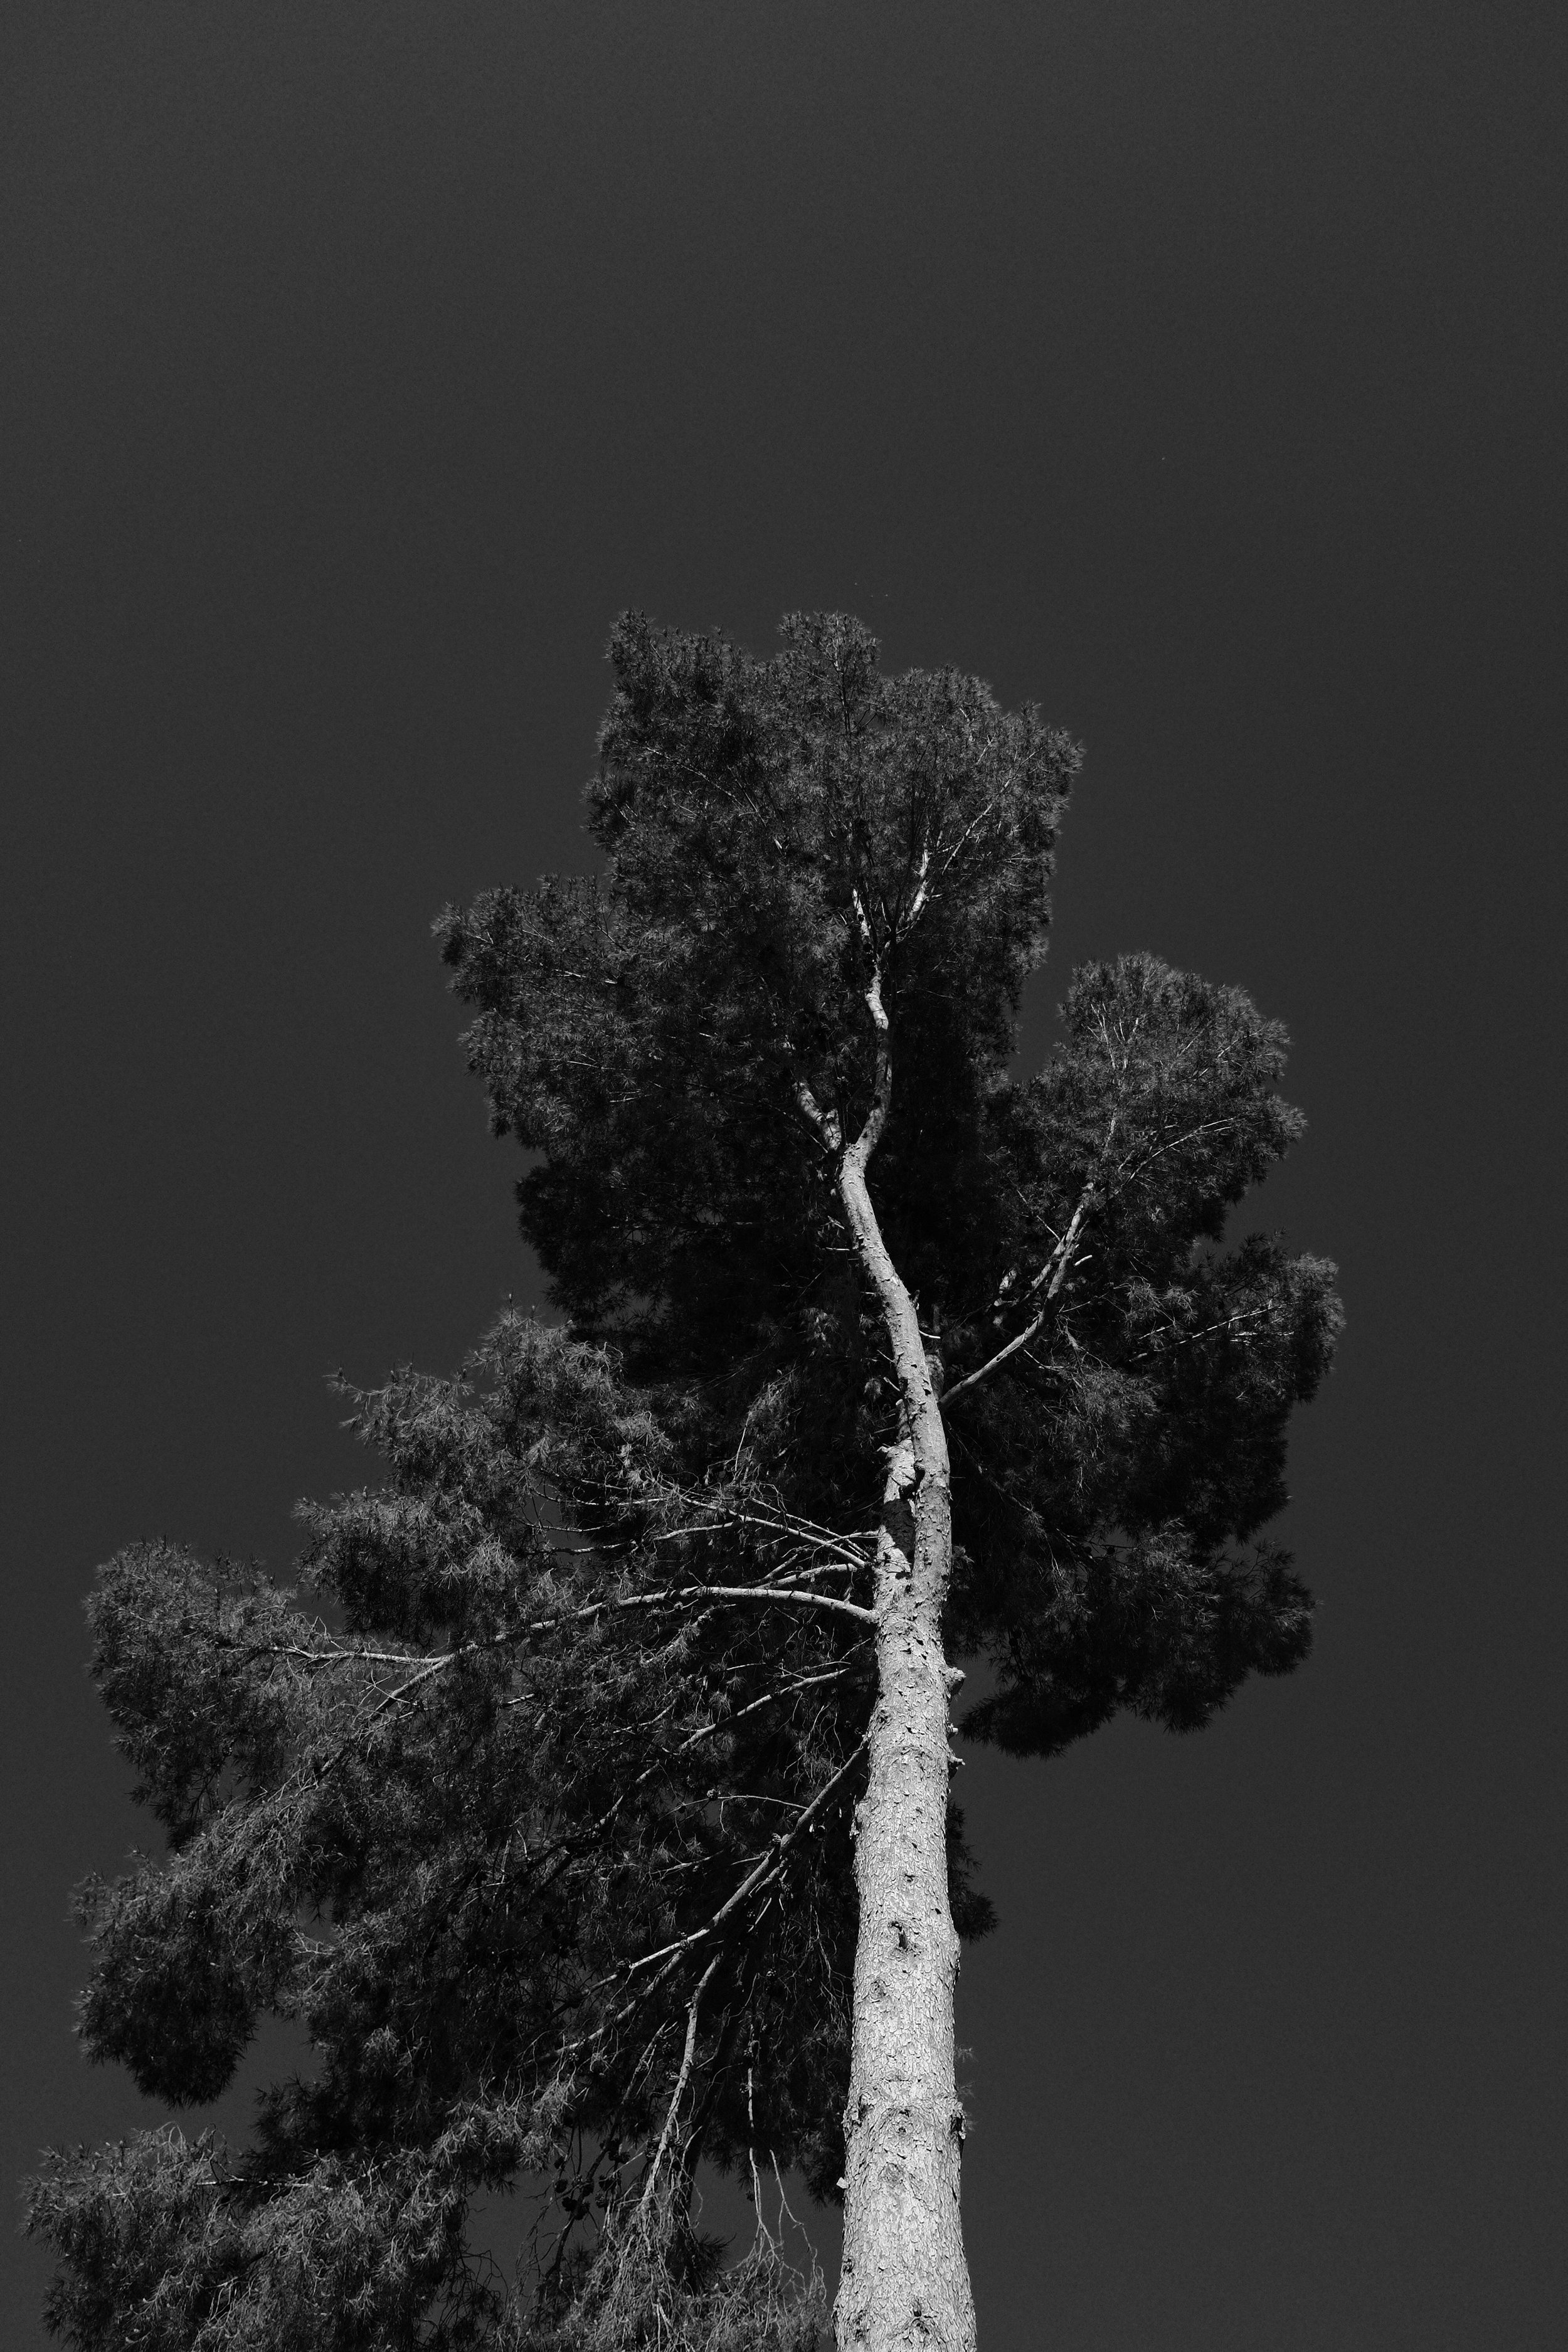 One of the few trees still standing in the same place where me and my brothers grew up - Fujifilm X100F Acros Film Simulation